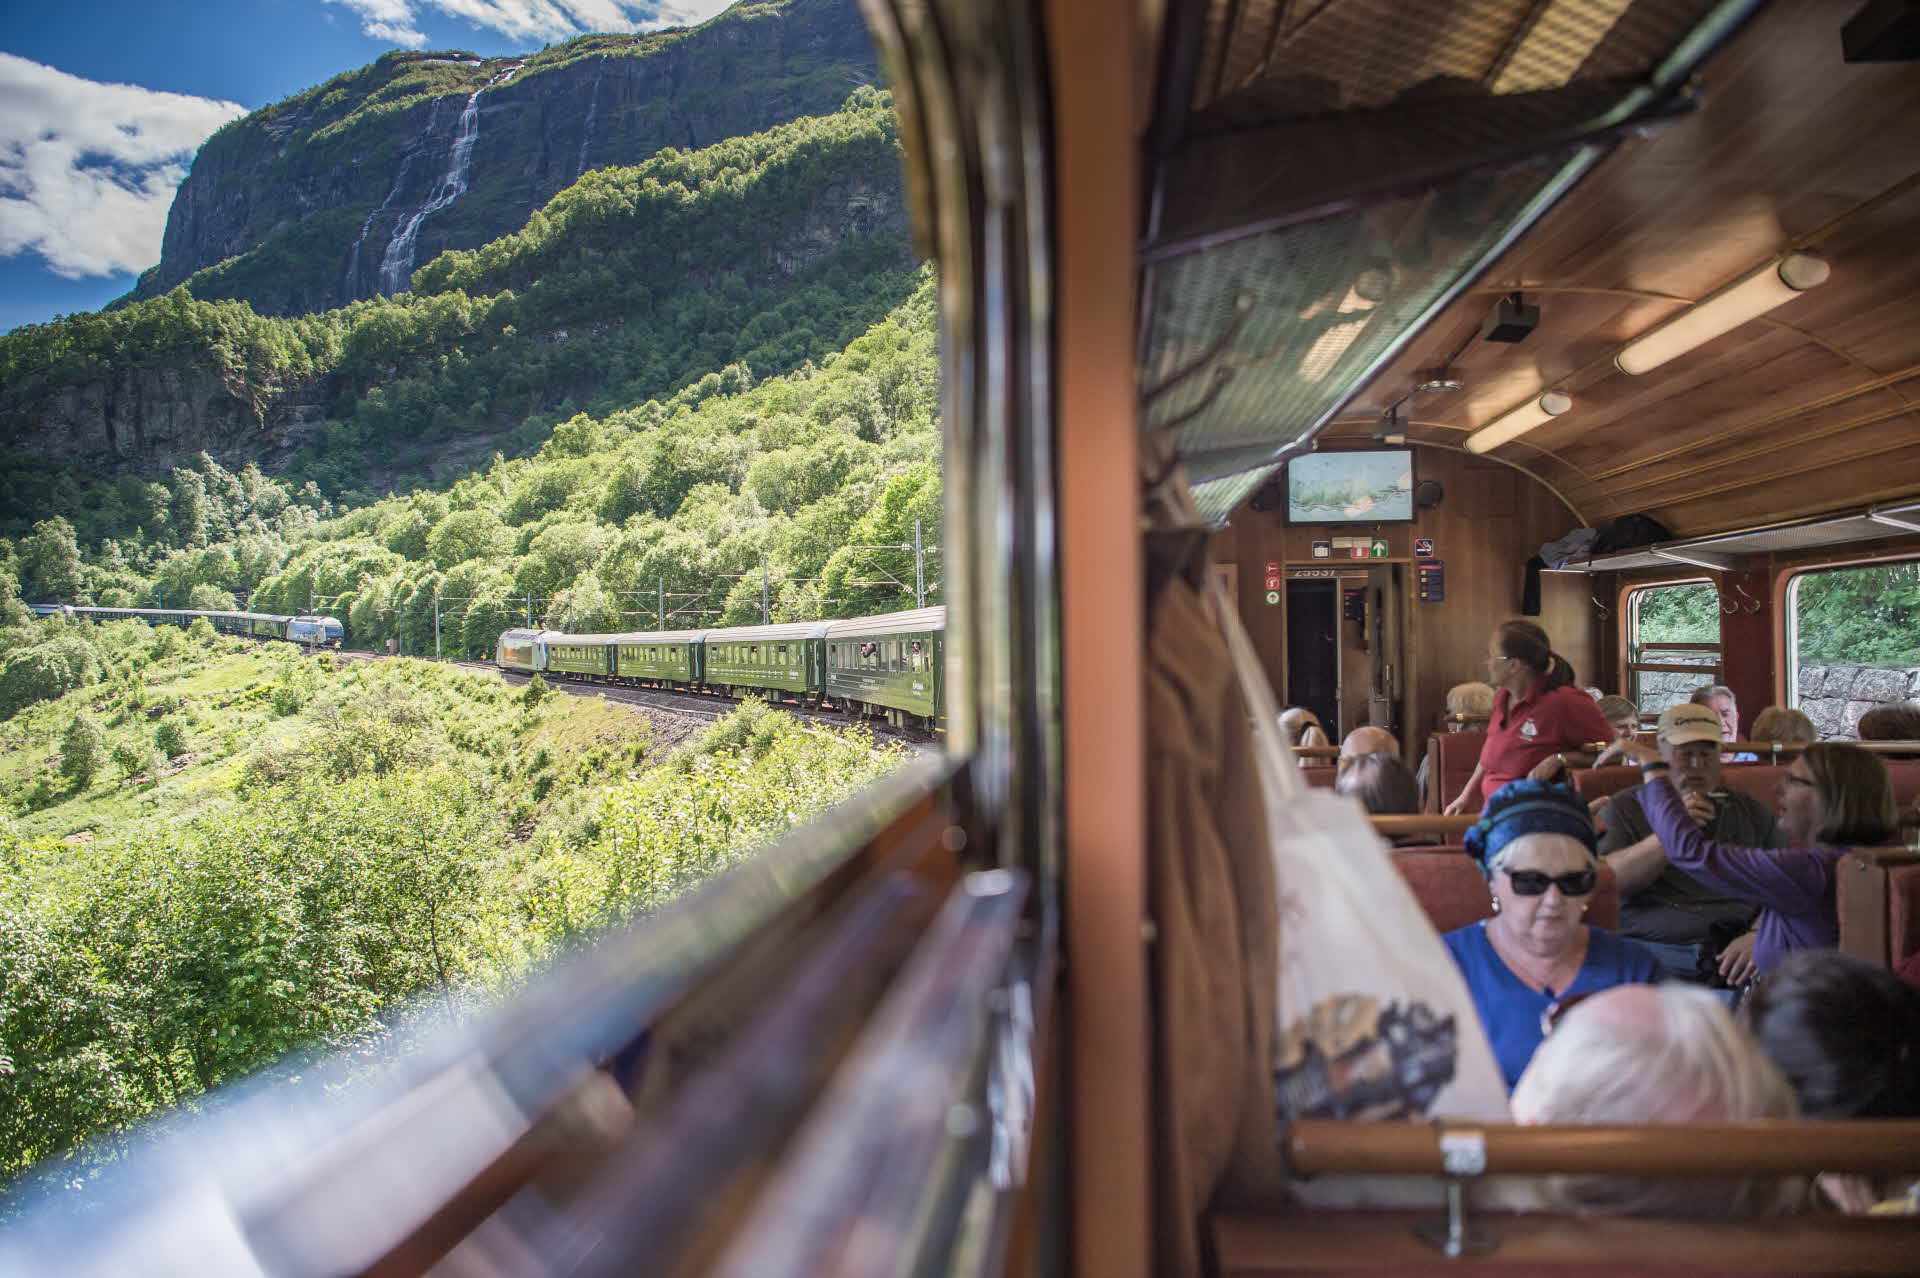 A view towards the Flåmsdalen Valley and an oncoming train from a window on the Flåm Railway